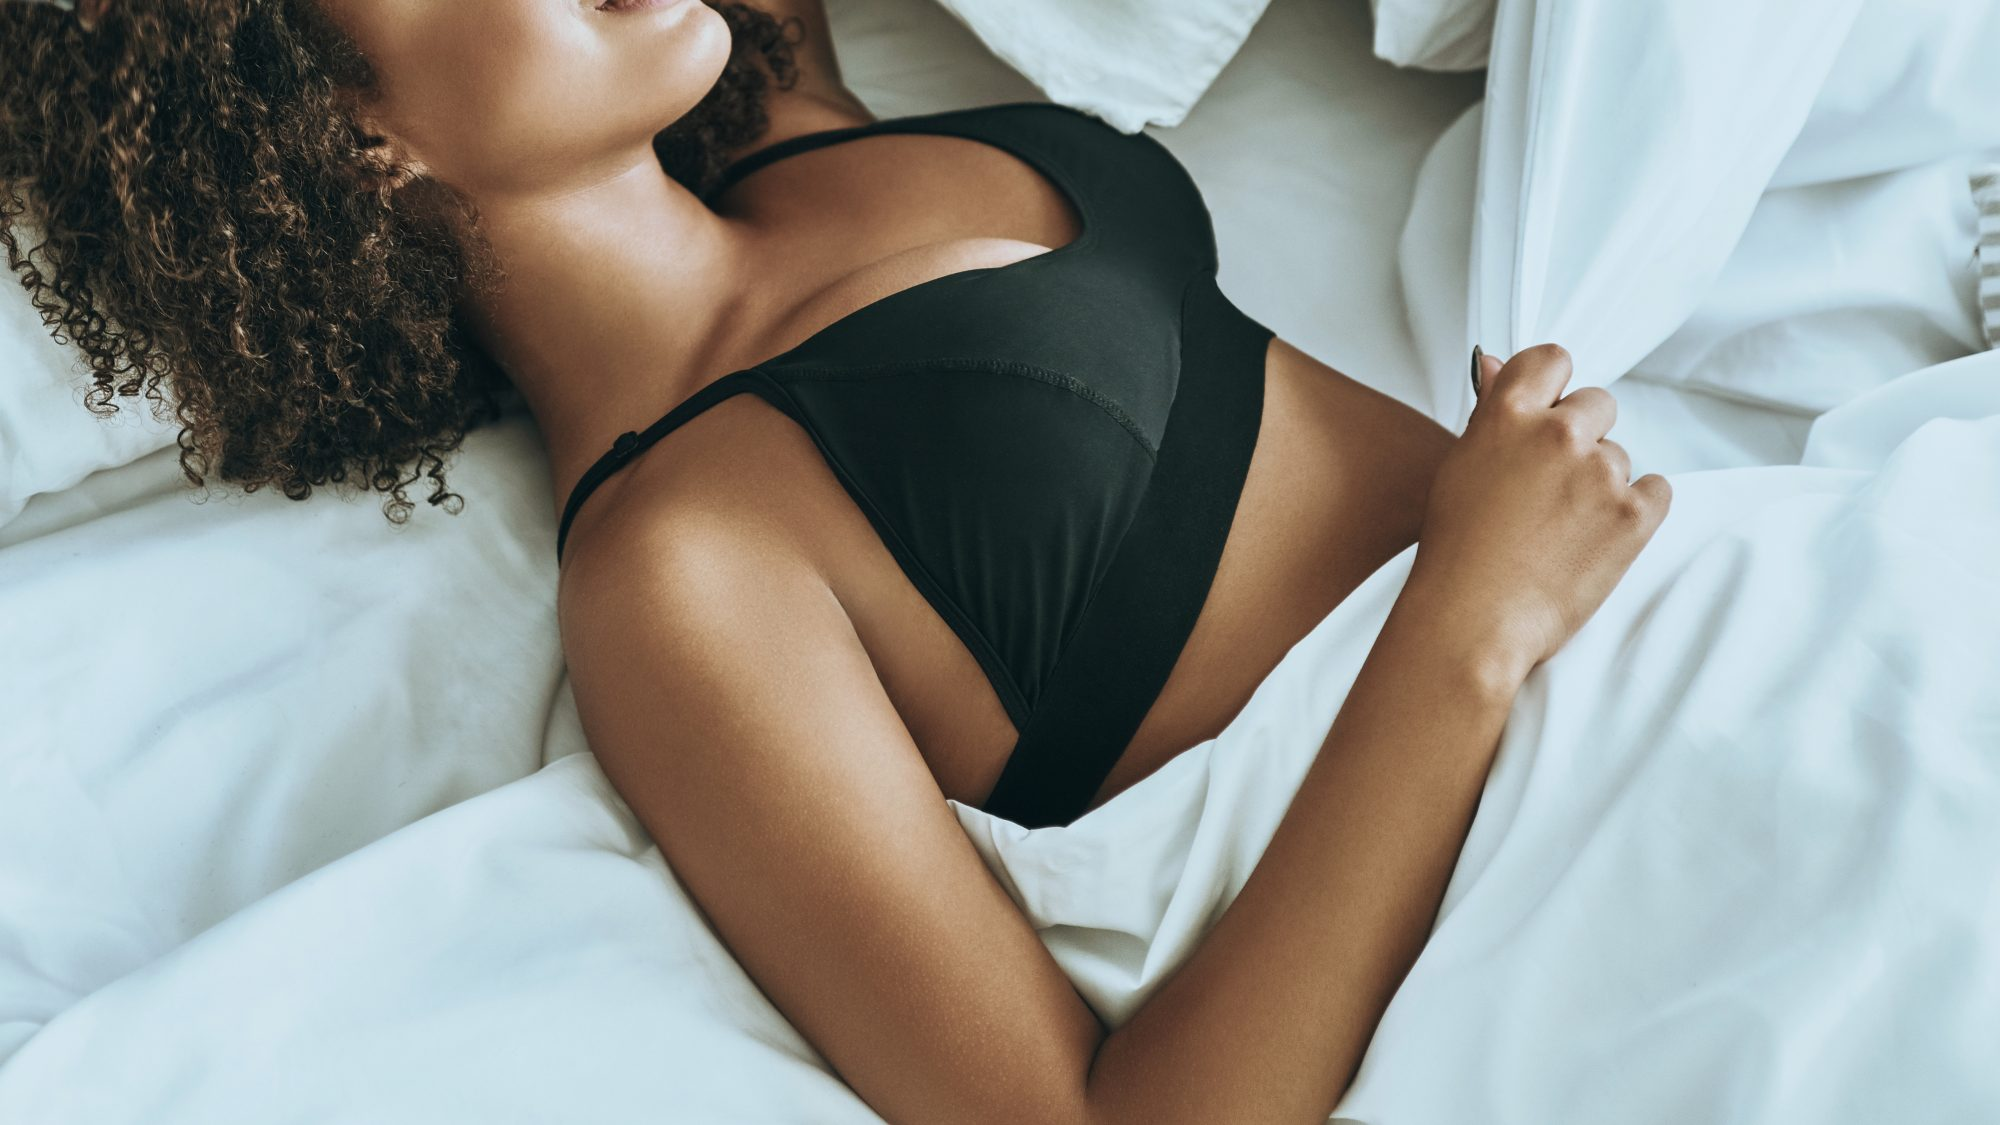 Do You Wear a Bra to Sleep? Here's What to Avoid Wearing: women sleeping in bed with a bra on